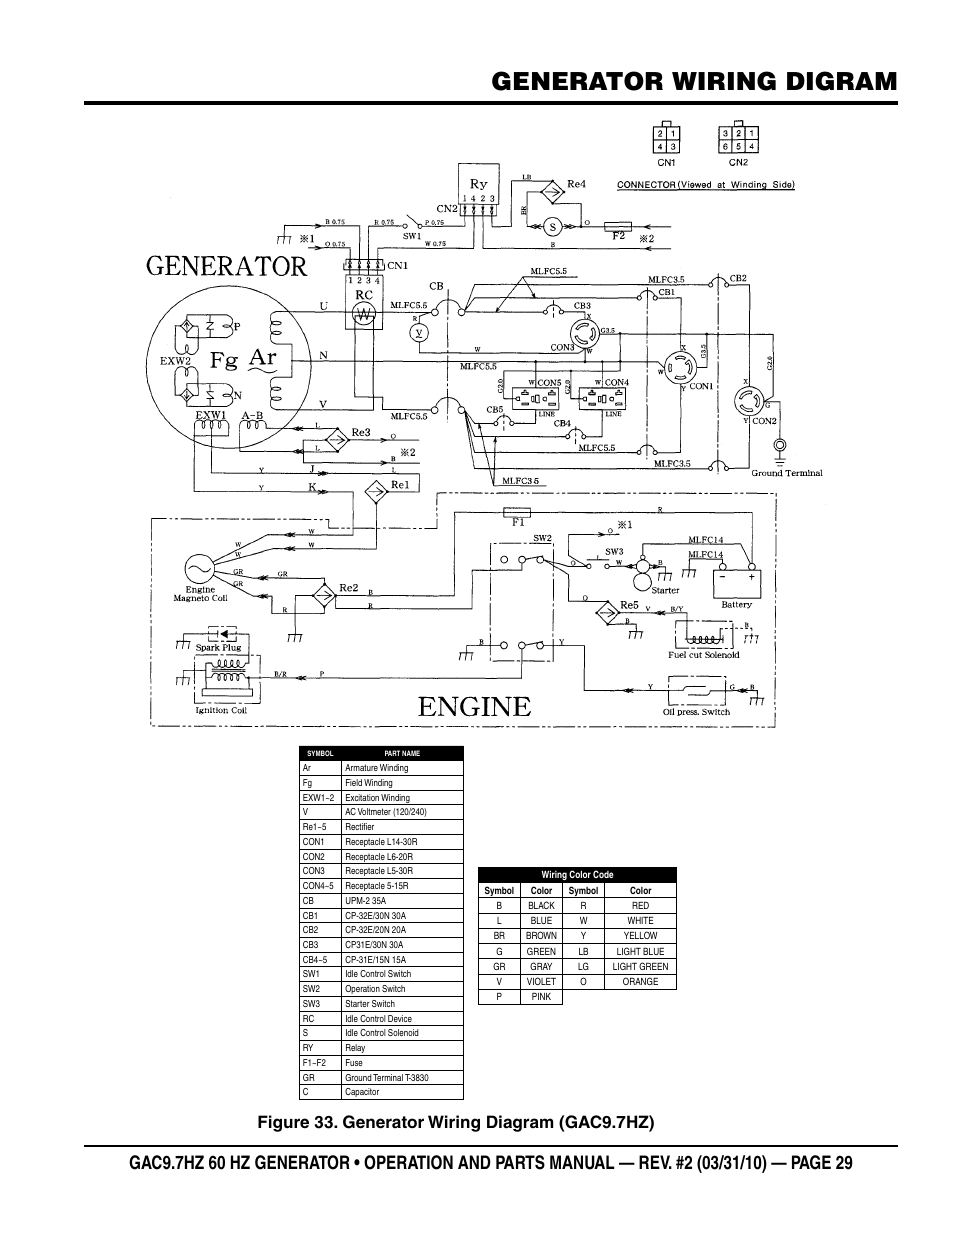 Nema L14 20 Plug Wiring Diagram L15 30r Great Design Of 20r A 30p